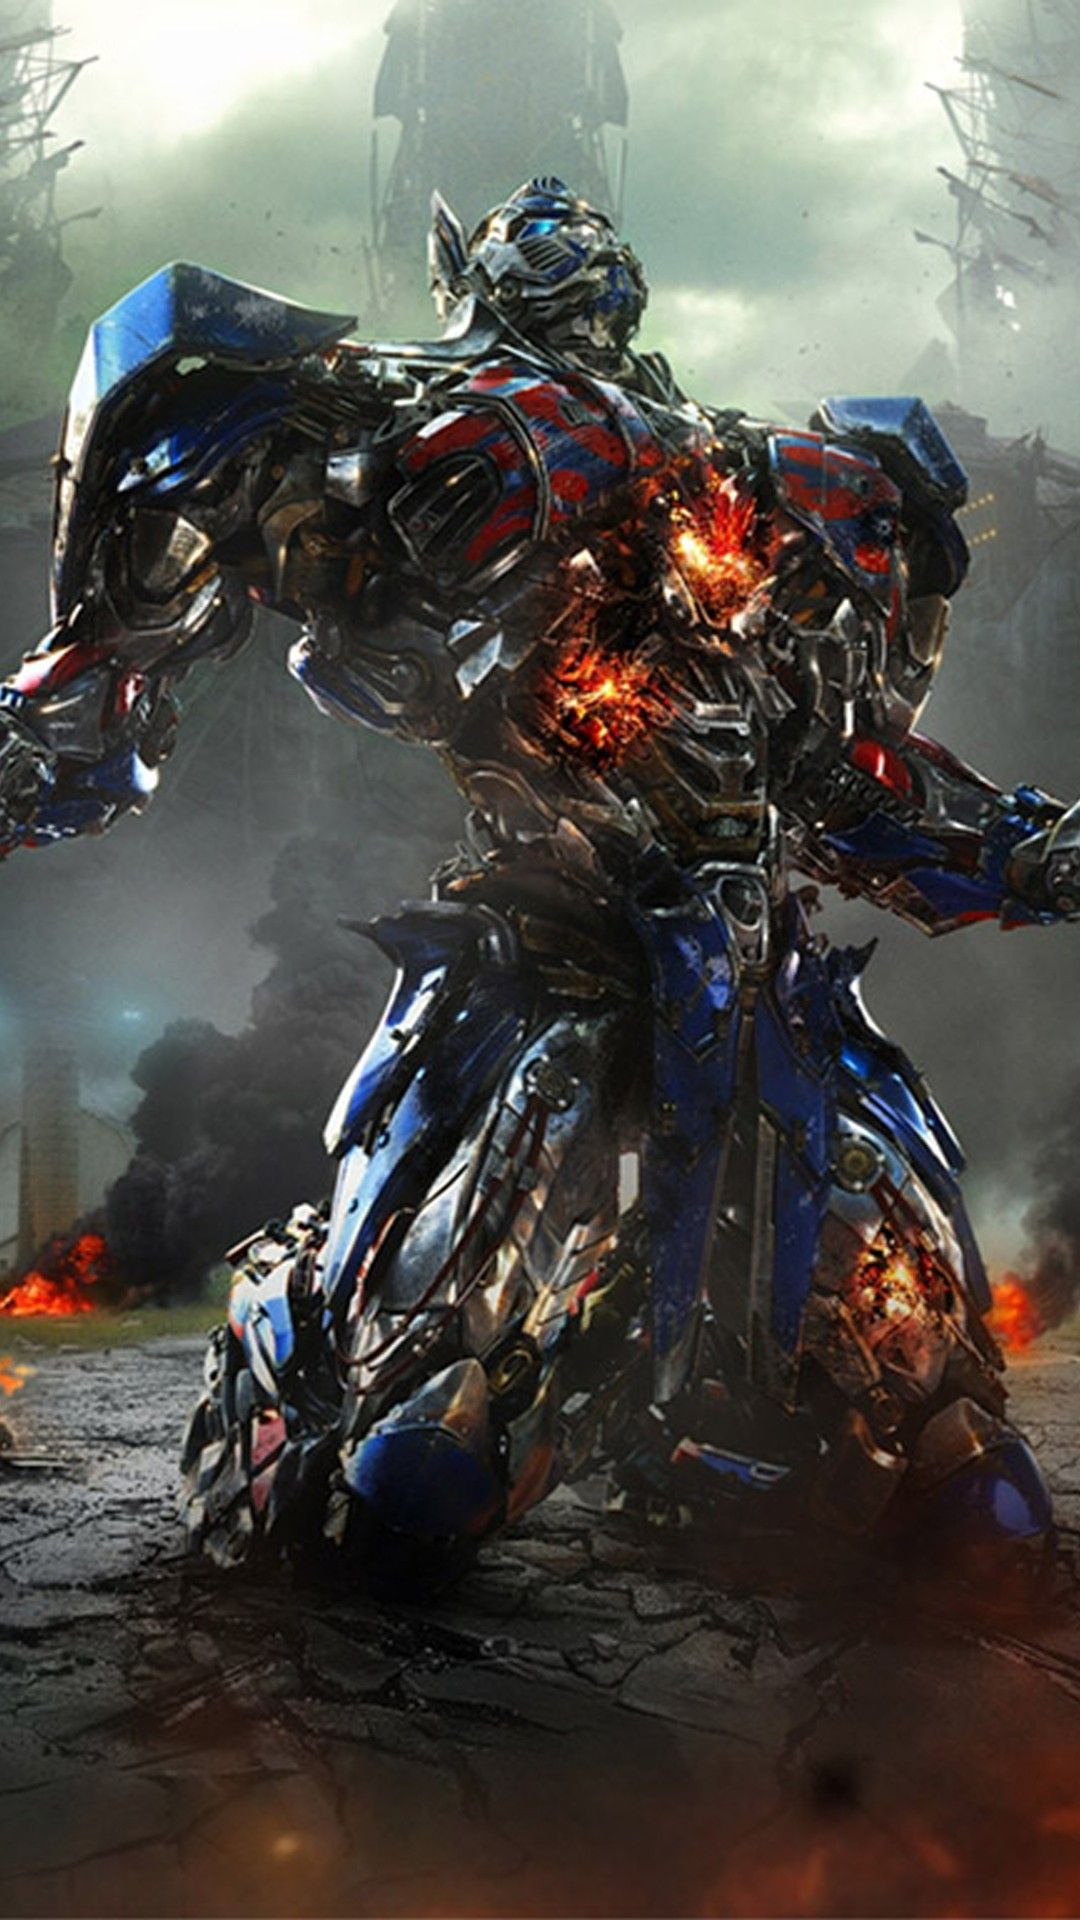 Movies iPhone 6 Plus Wallpapers - Transformers Optimus Prime Movie iPhone 6 Plus HD Wallpaper # ...